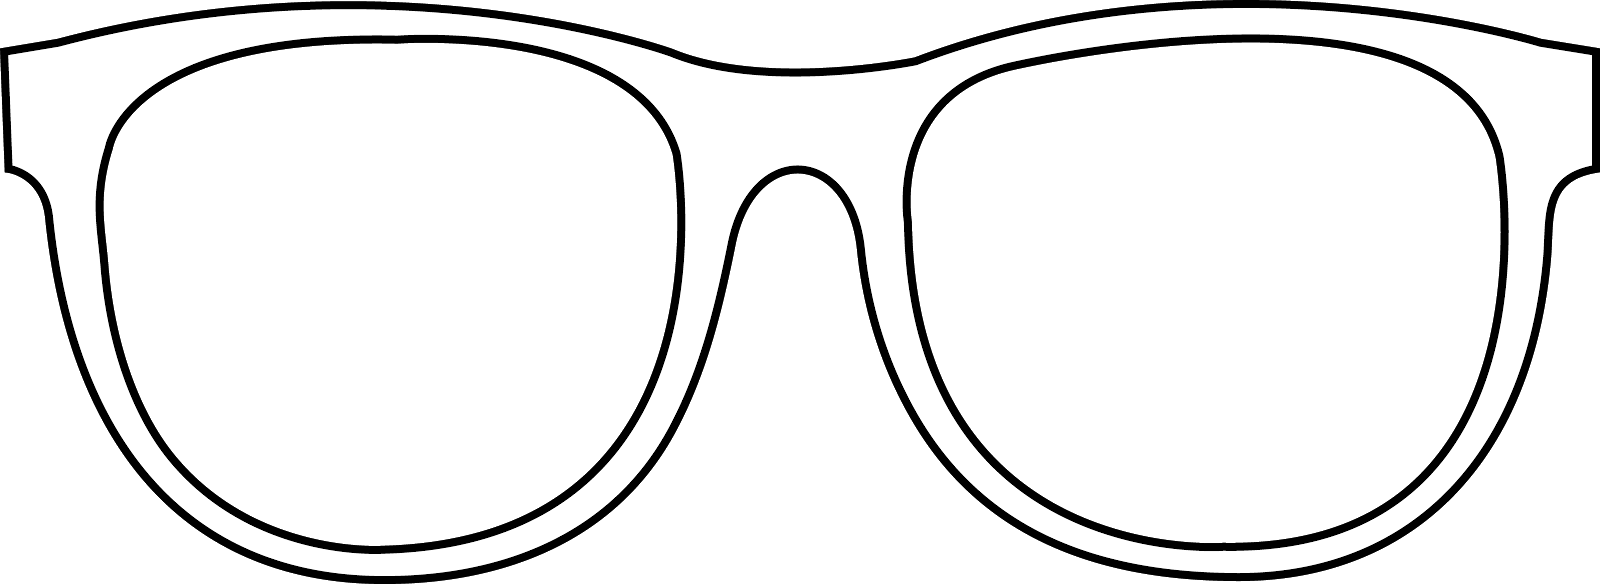 Outline sunglasses